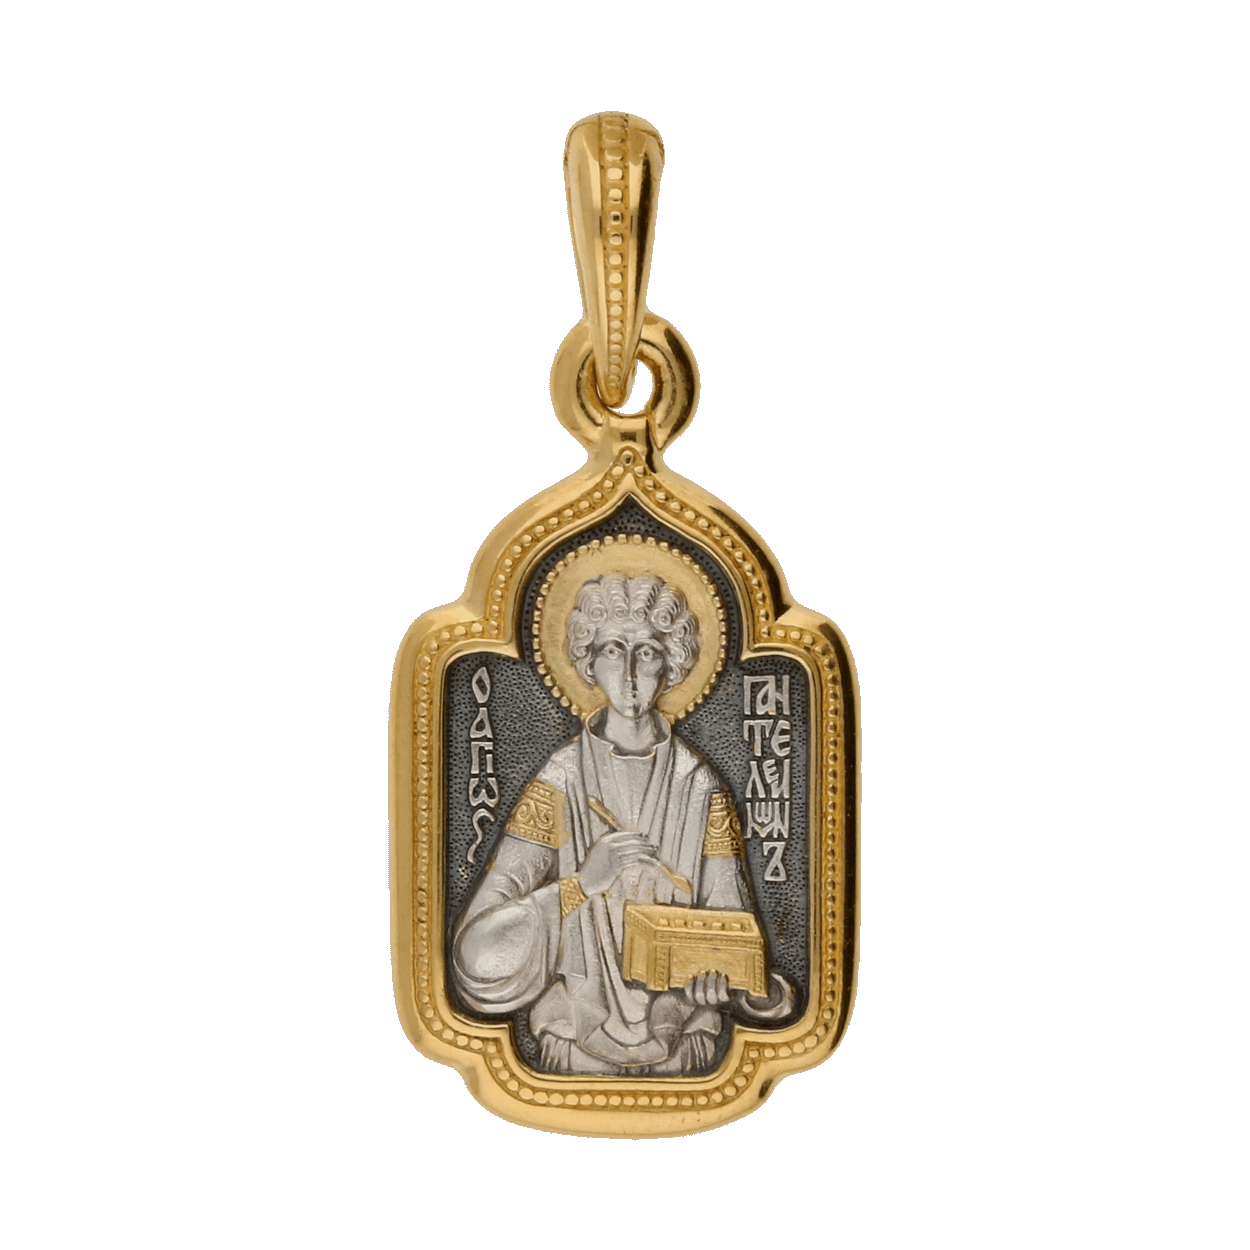 IS008_A-Russian-Orthodox-Icon-silver-medal-pendant-SAINT-PANTELEIMON-THE-HEALER-Master-Jeweler-Fedorov-min (1)-min